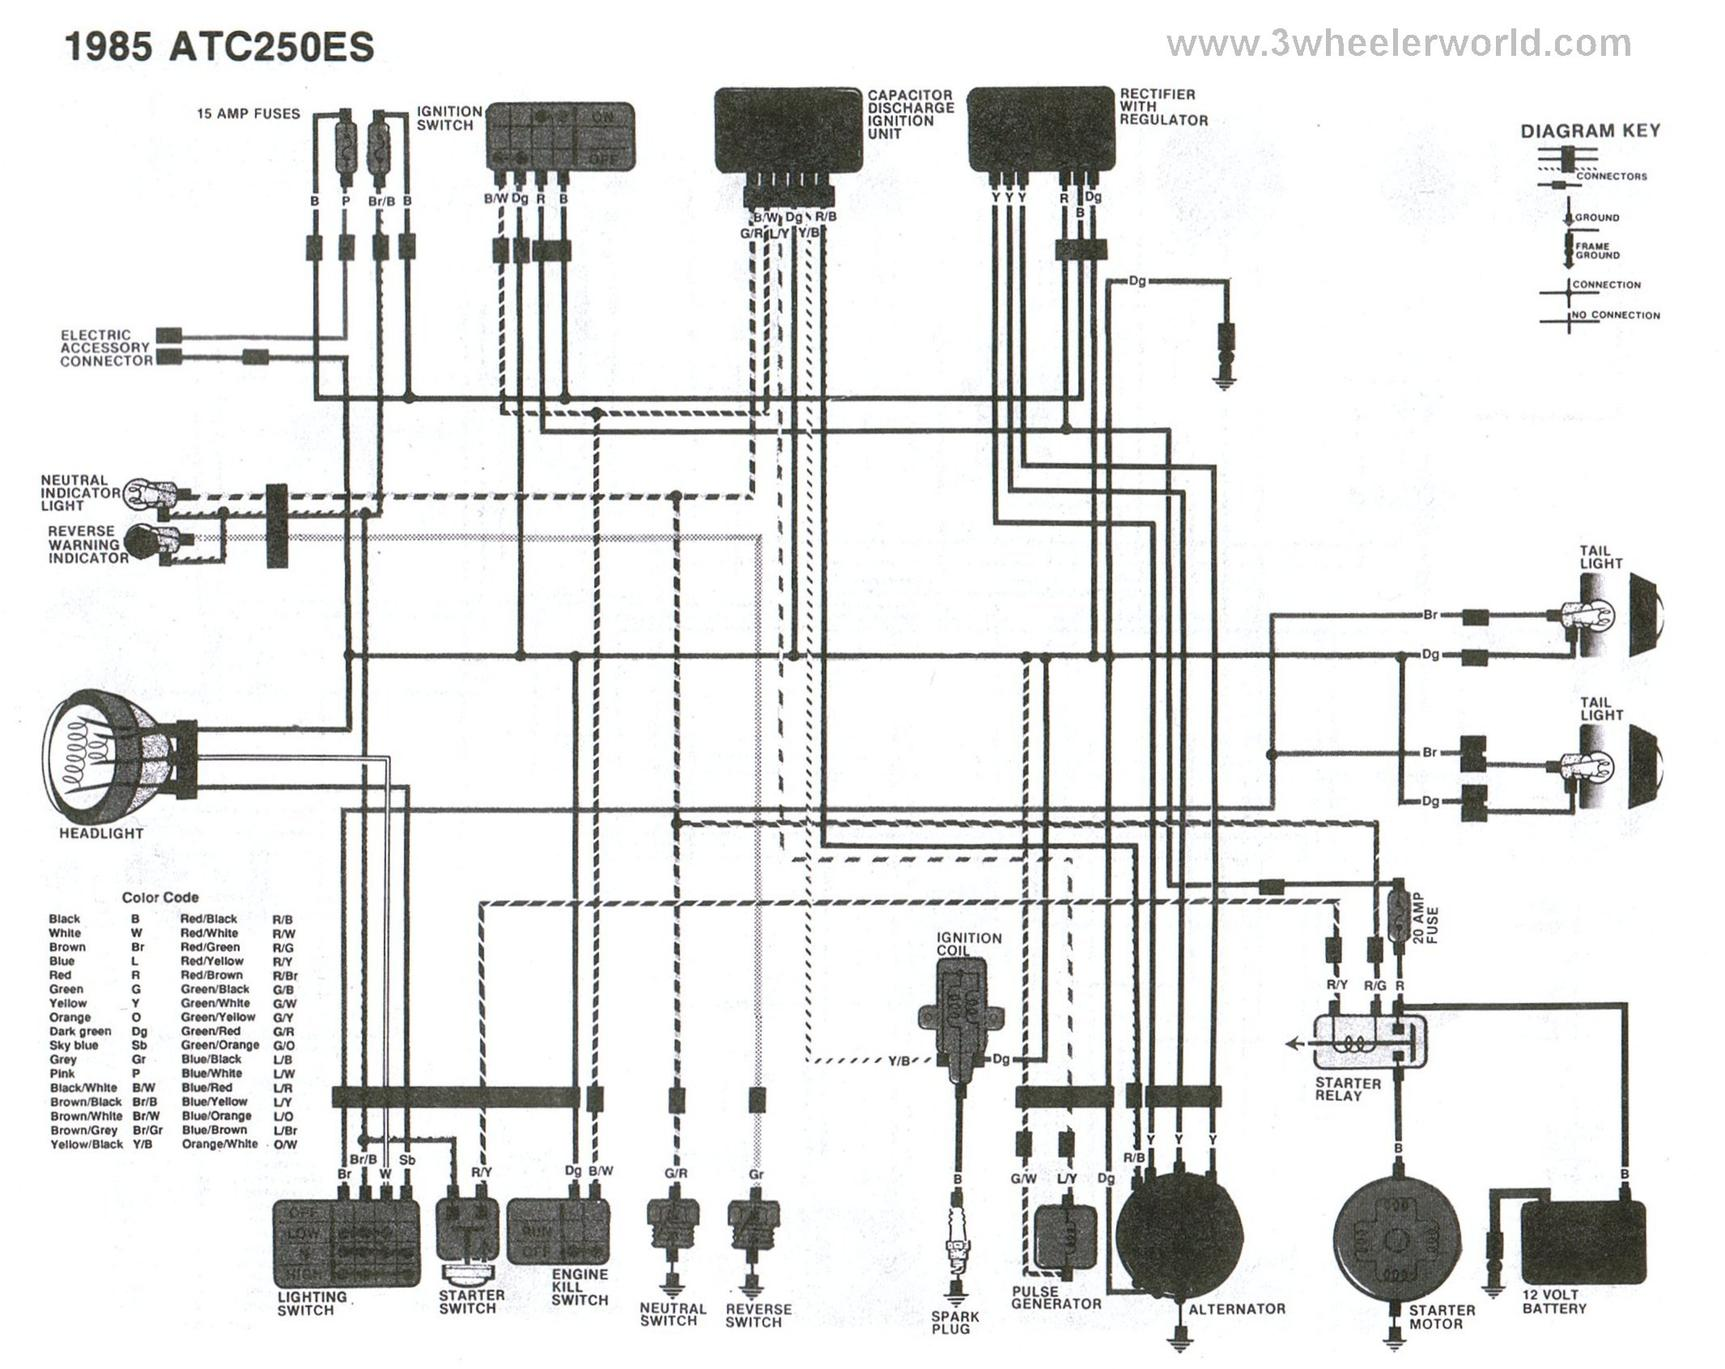 83 honda 250 3 wheeler engine diagram